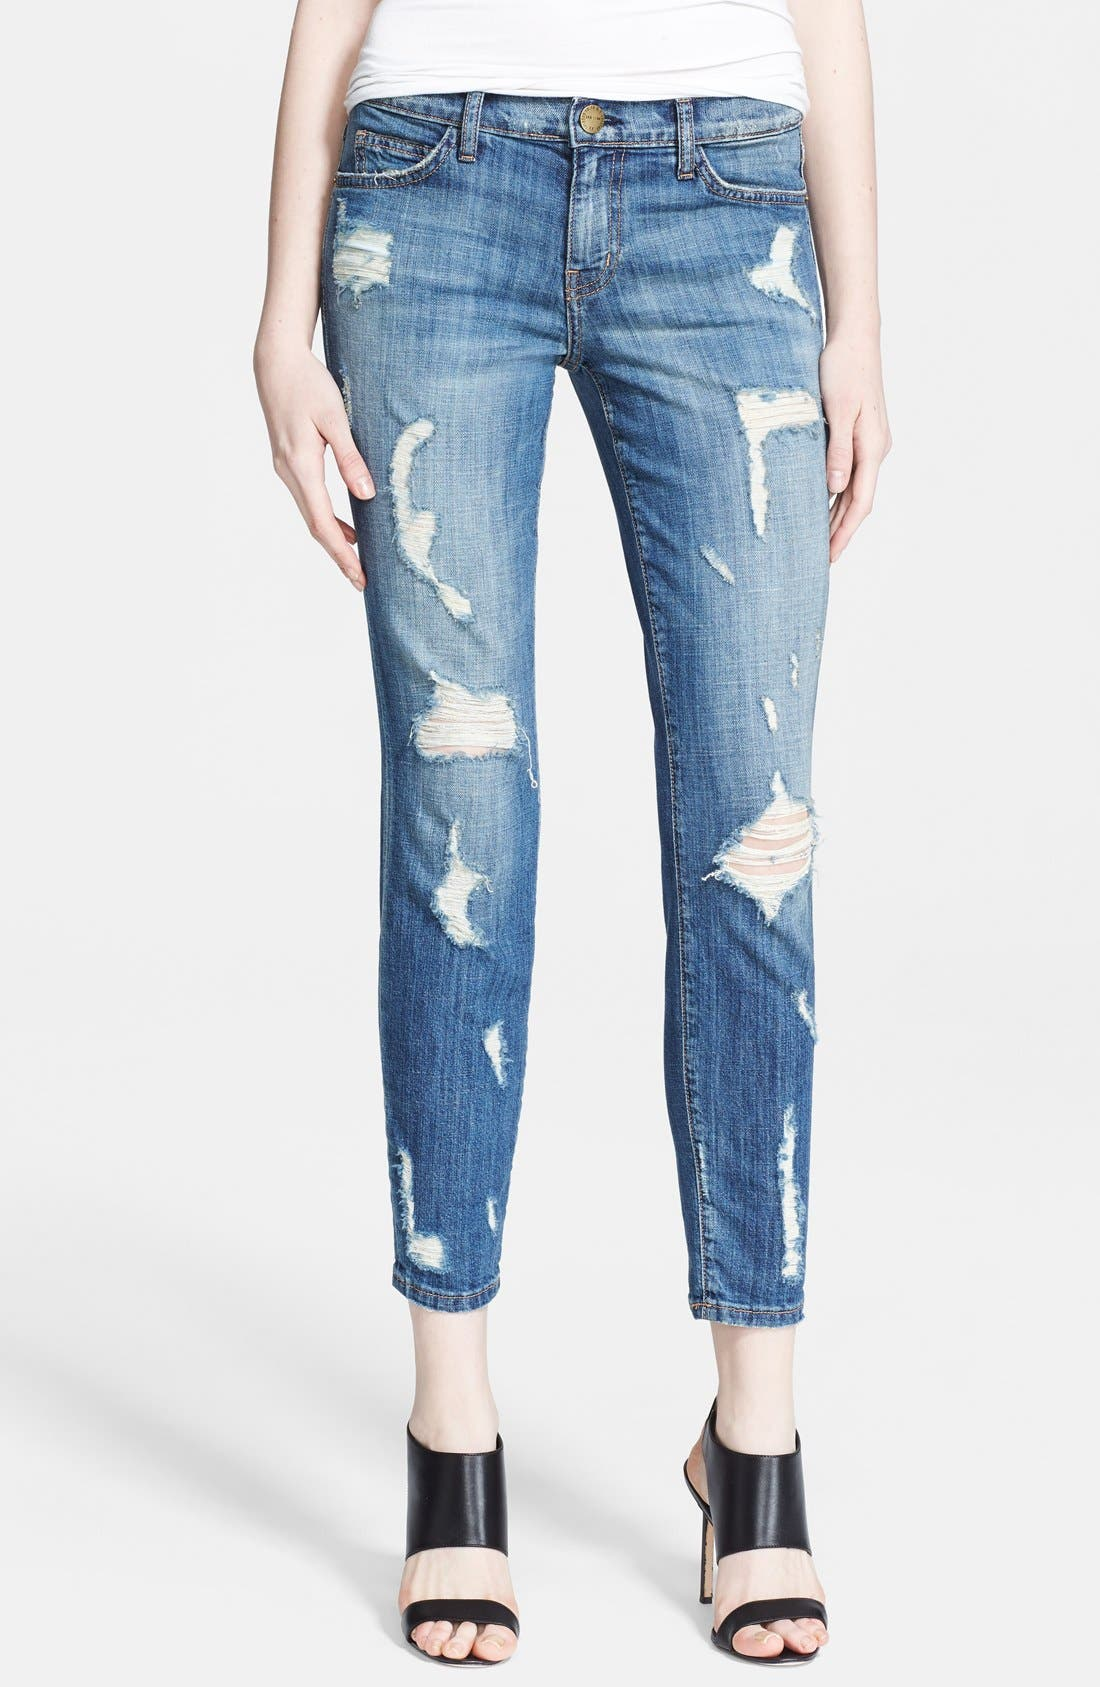 Main Image - Current/Elliott 'The Stiletto' Skinny Jeans (Jodie Shredded)